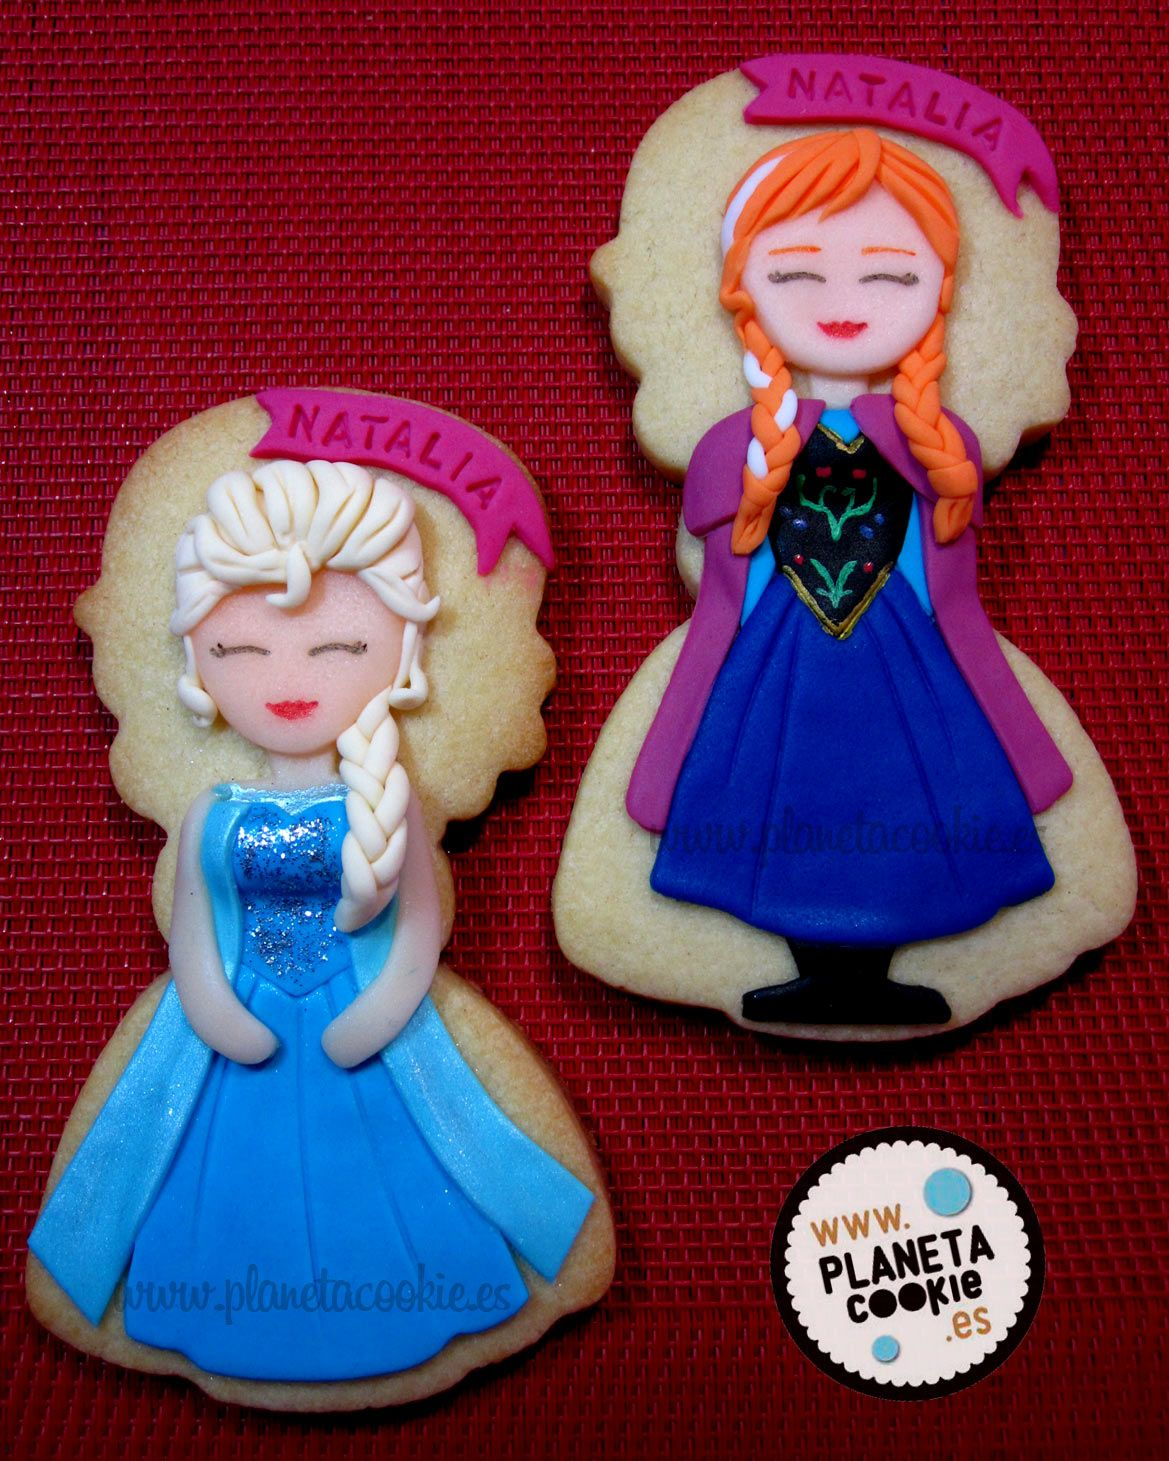 Galletas Decoradas De Princesas Galletas De Princesas Disney Planeta Cookie Galletas